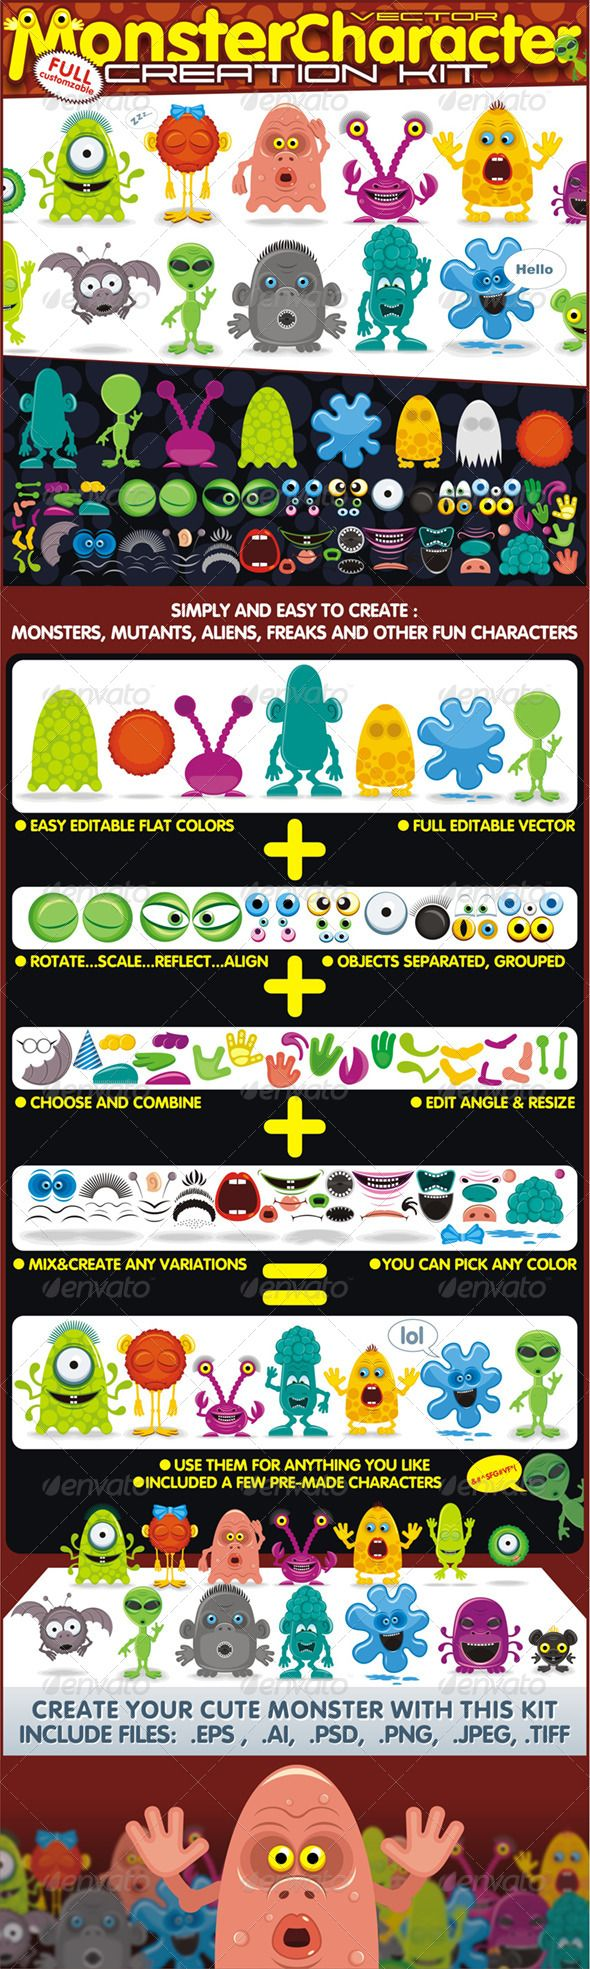 Monster or Creatures Creation Kit  #GraphicRiver         Characters, Monsters or Creatures Creation Kit. Create your own Cartoon Characters with Unlimited